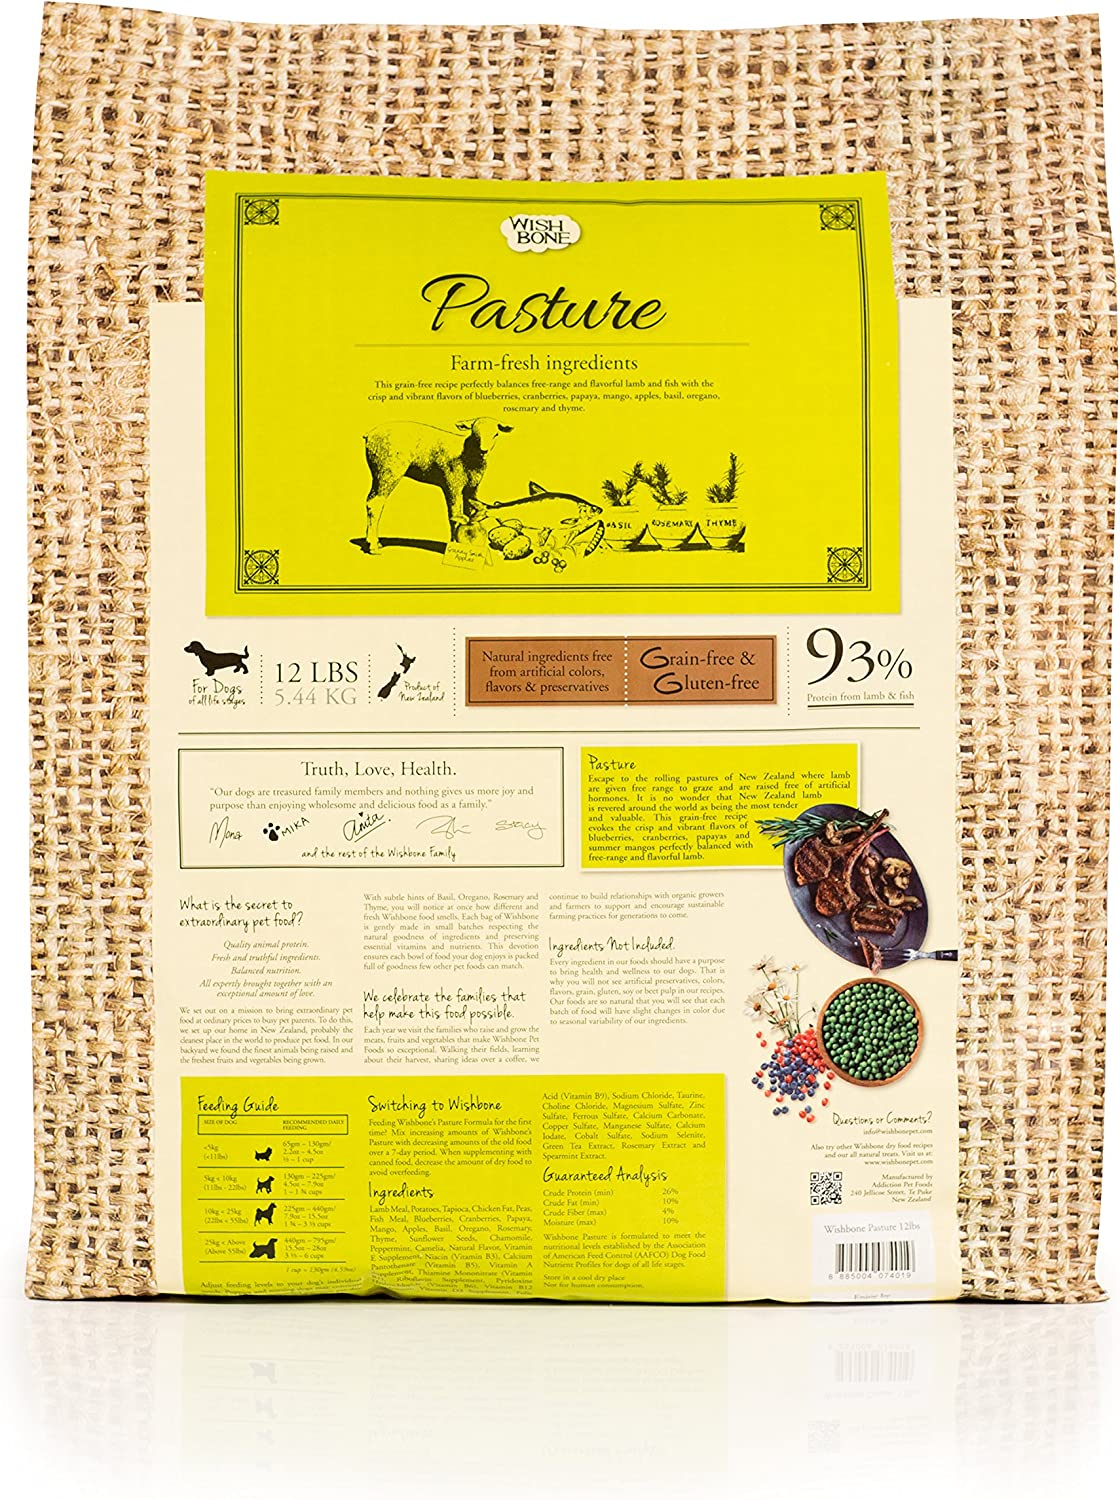 Wishbone Pasture Grain Free and Gluten Free Dry Dog Food, Made from New Zealand Lamb Dog Food, All Natural Dry Dog Food, Rich in Omega 3 and High Protein Dry Dog Food, 12 lbs